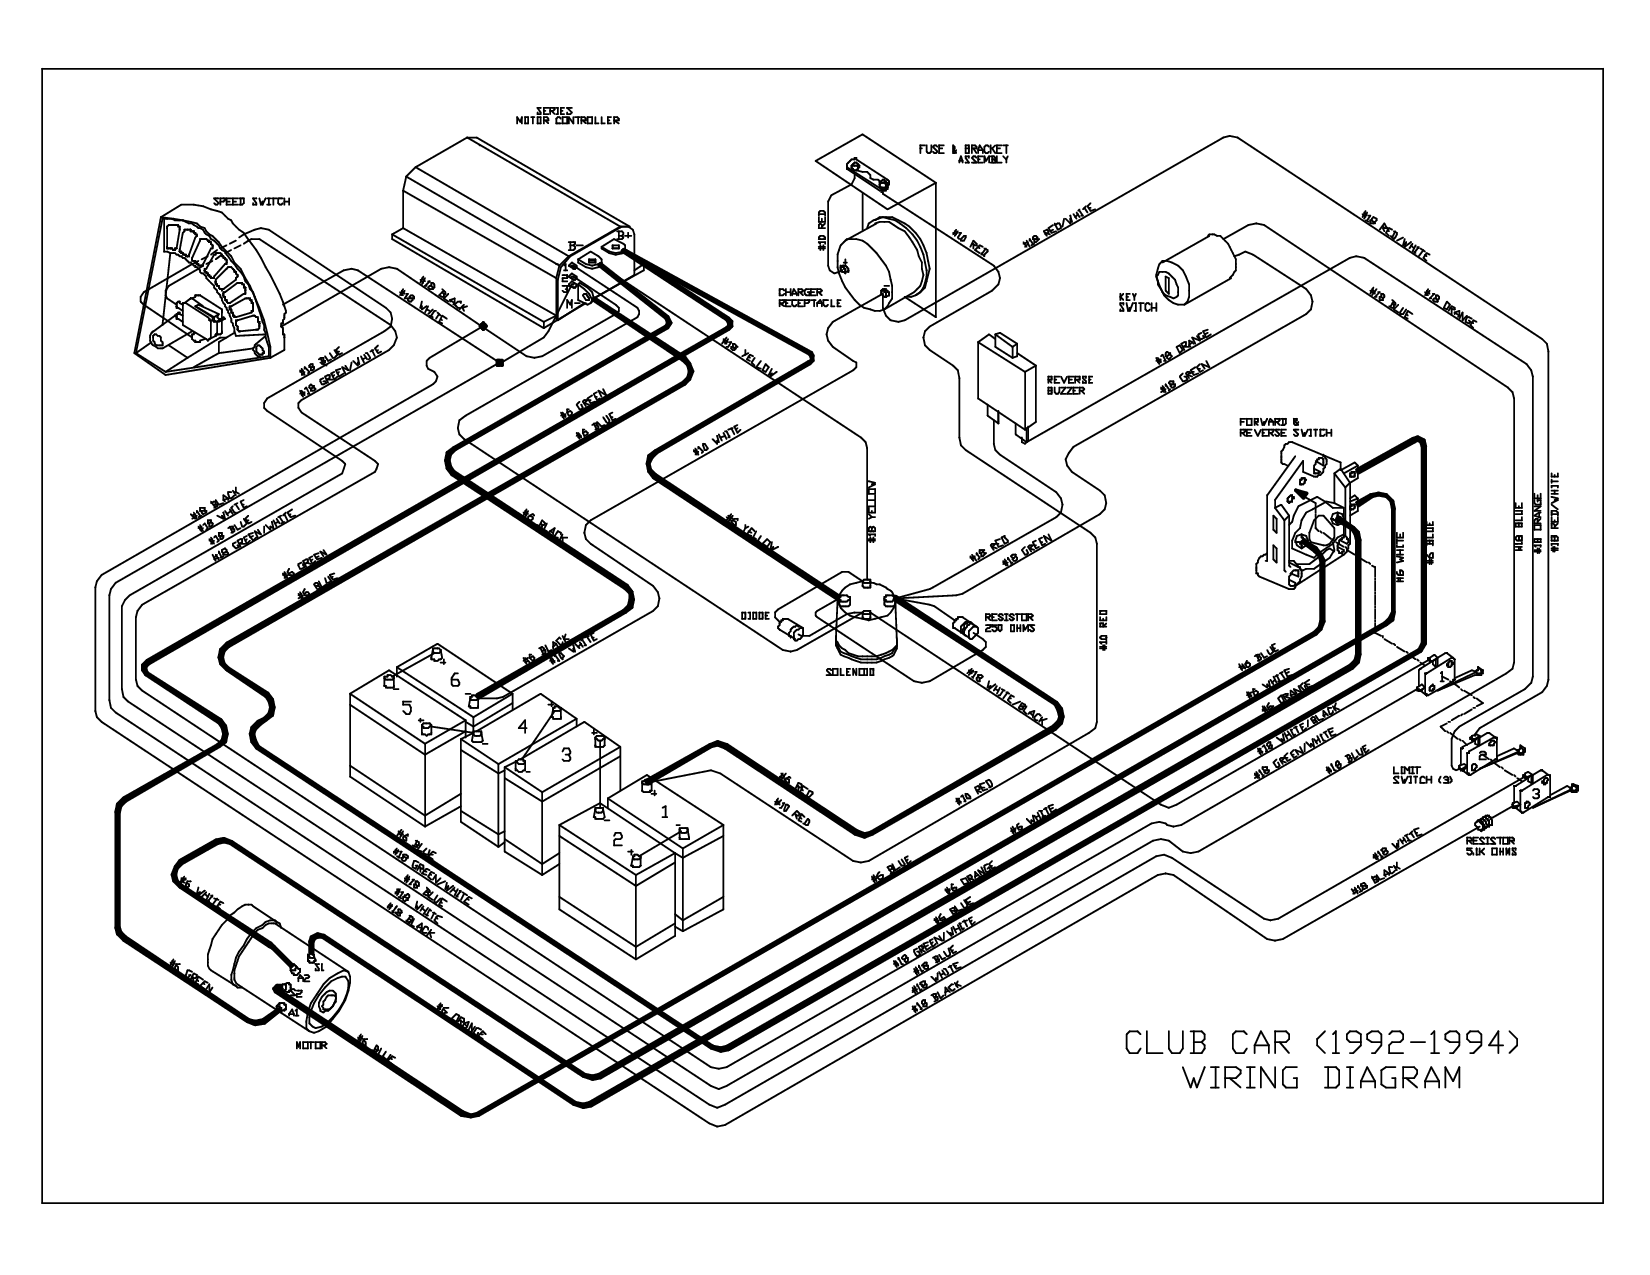 1995 club car wiring diagram | CLUB CAR (1992-1994) WIRING DIAGRAM | Club  car golf cart, Electric golf cart, Golf cartsPinterest